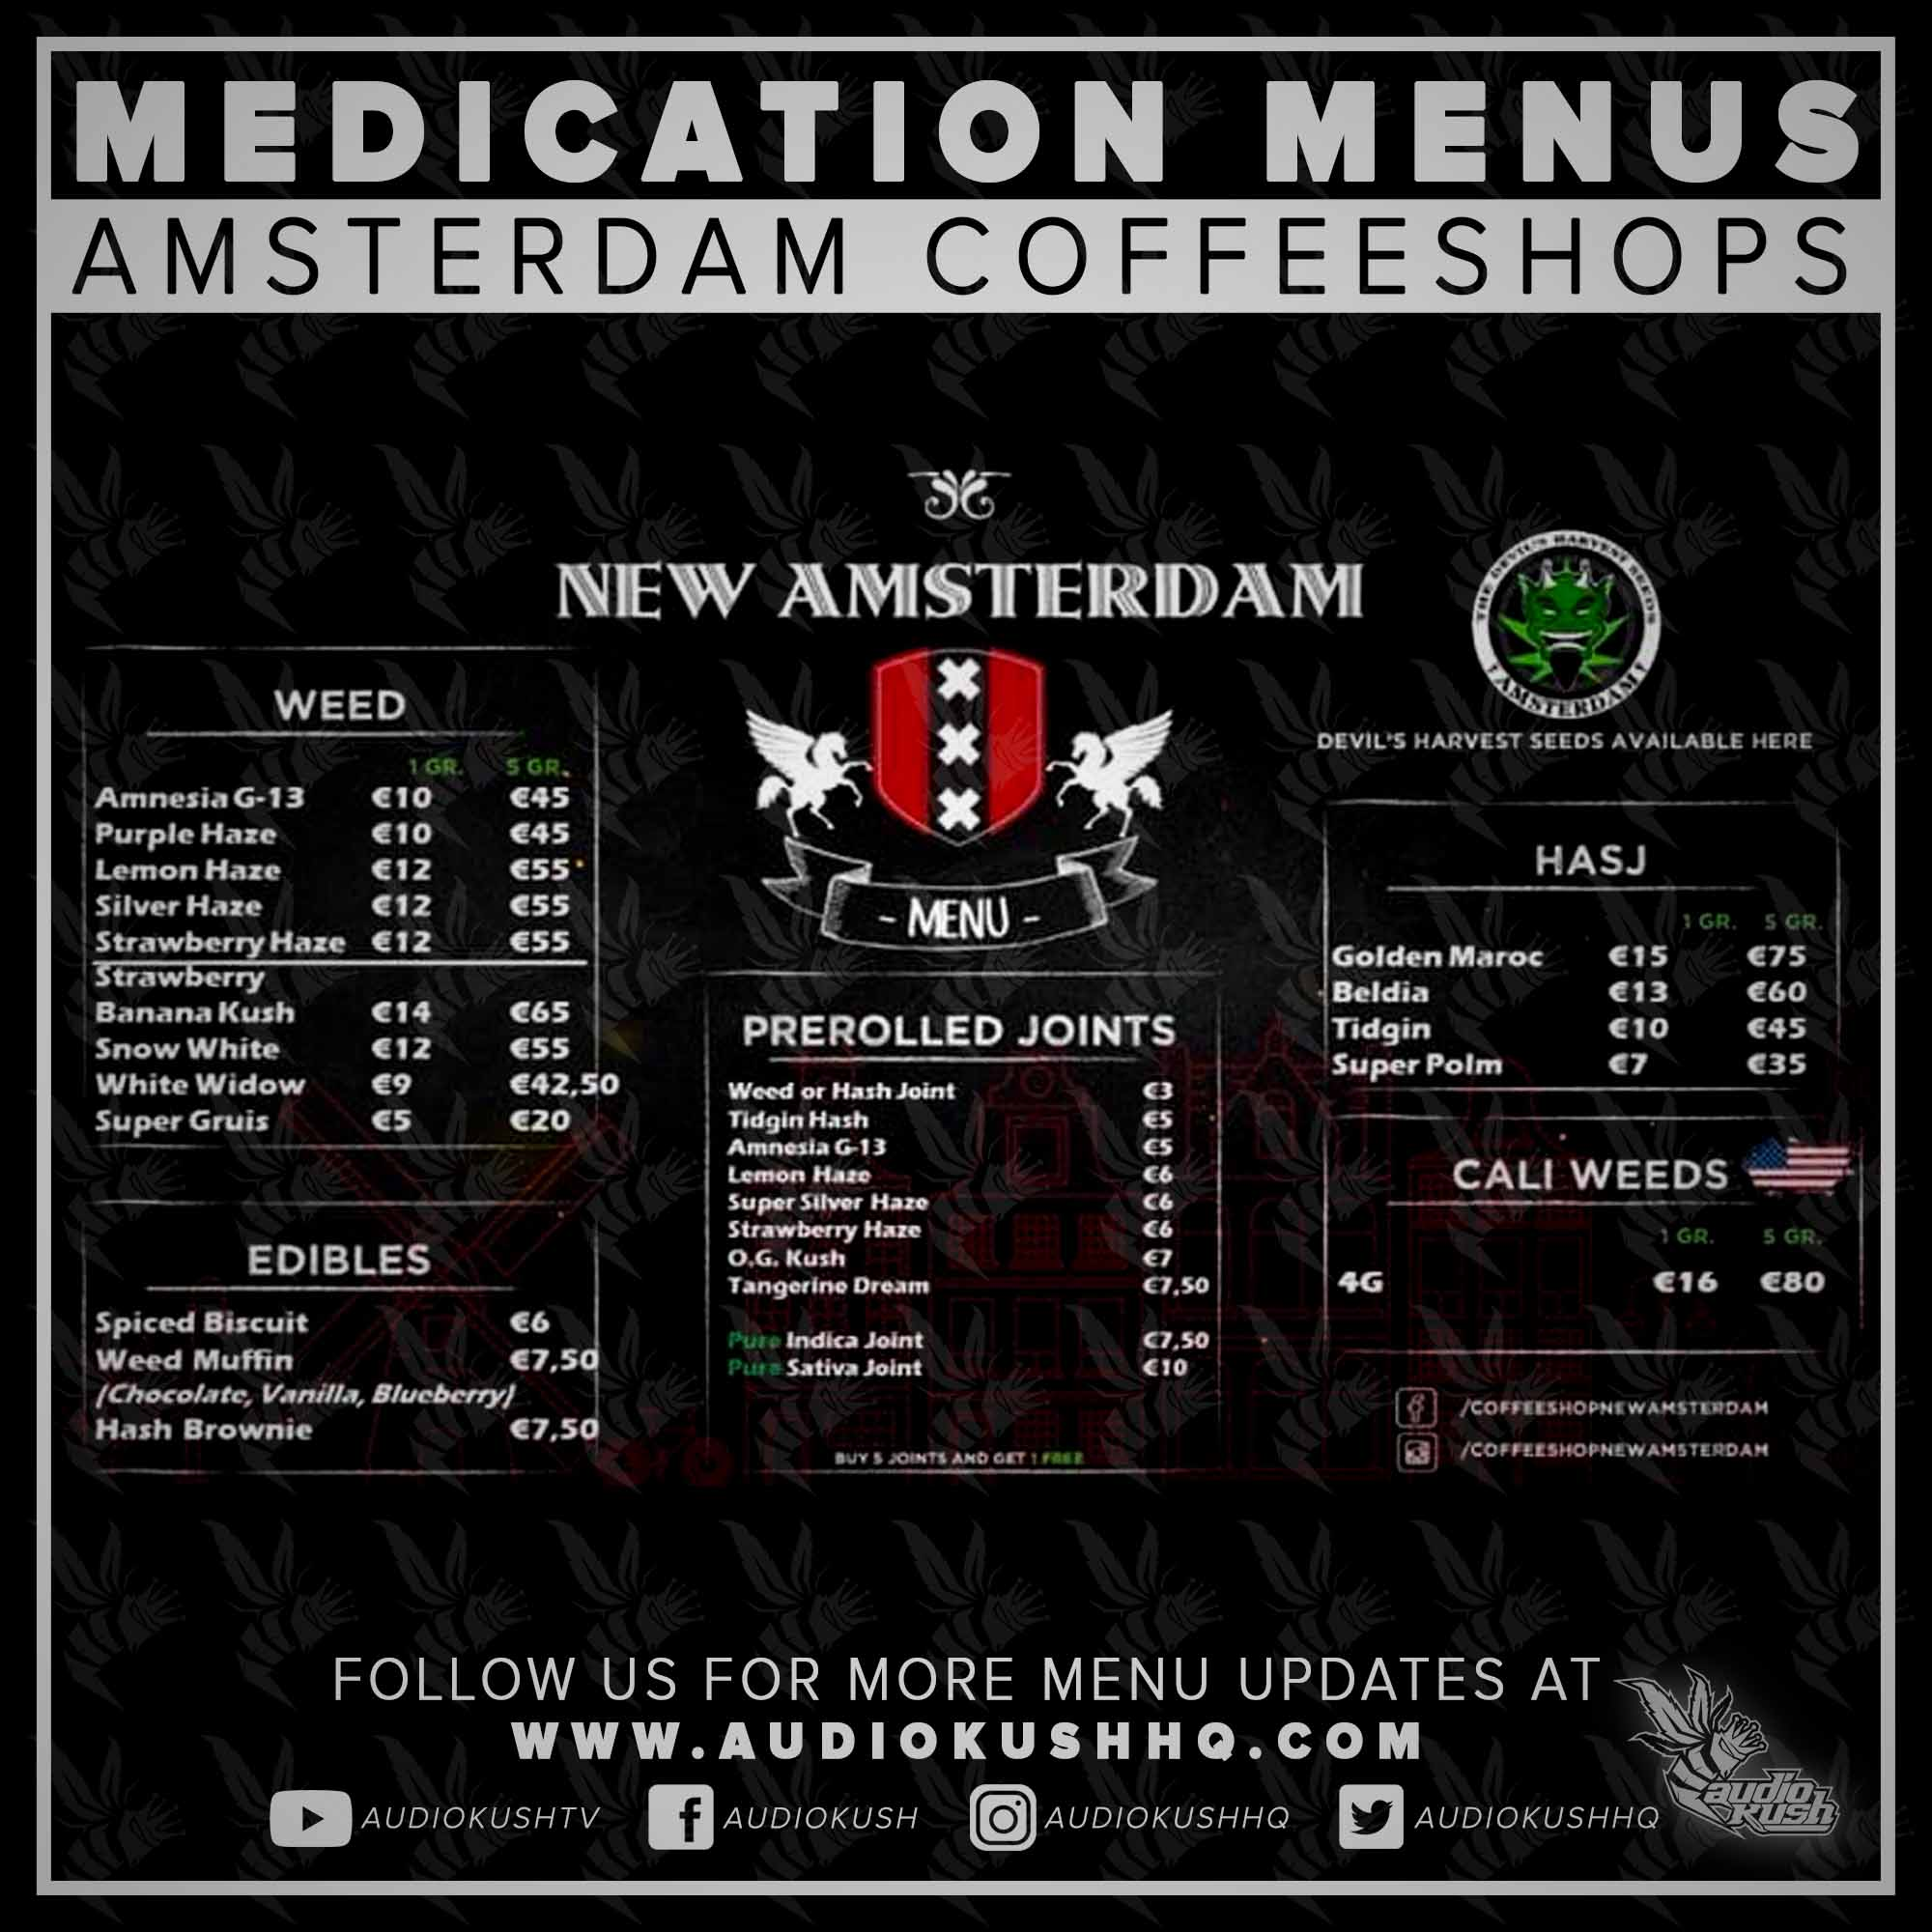 Coffeeshop Menu, Amsterdam, New Amsterdam, Nov 9 2020